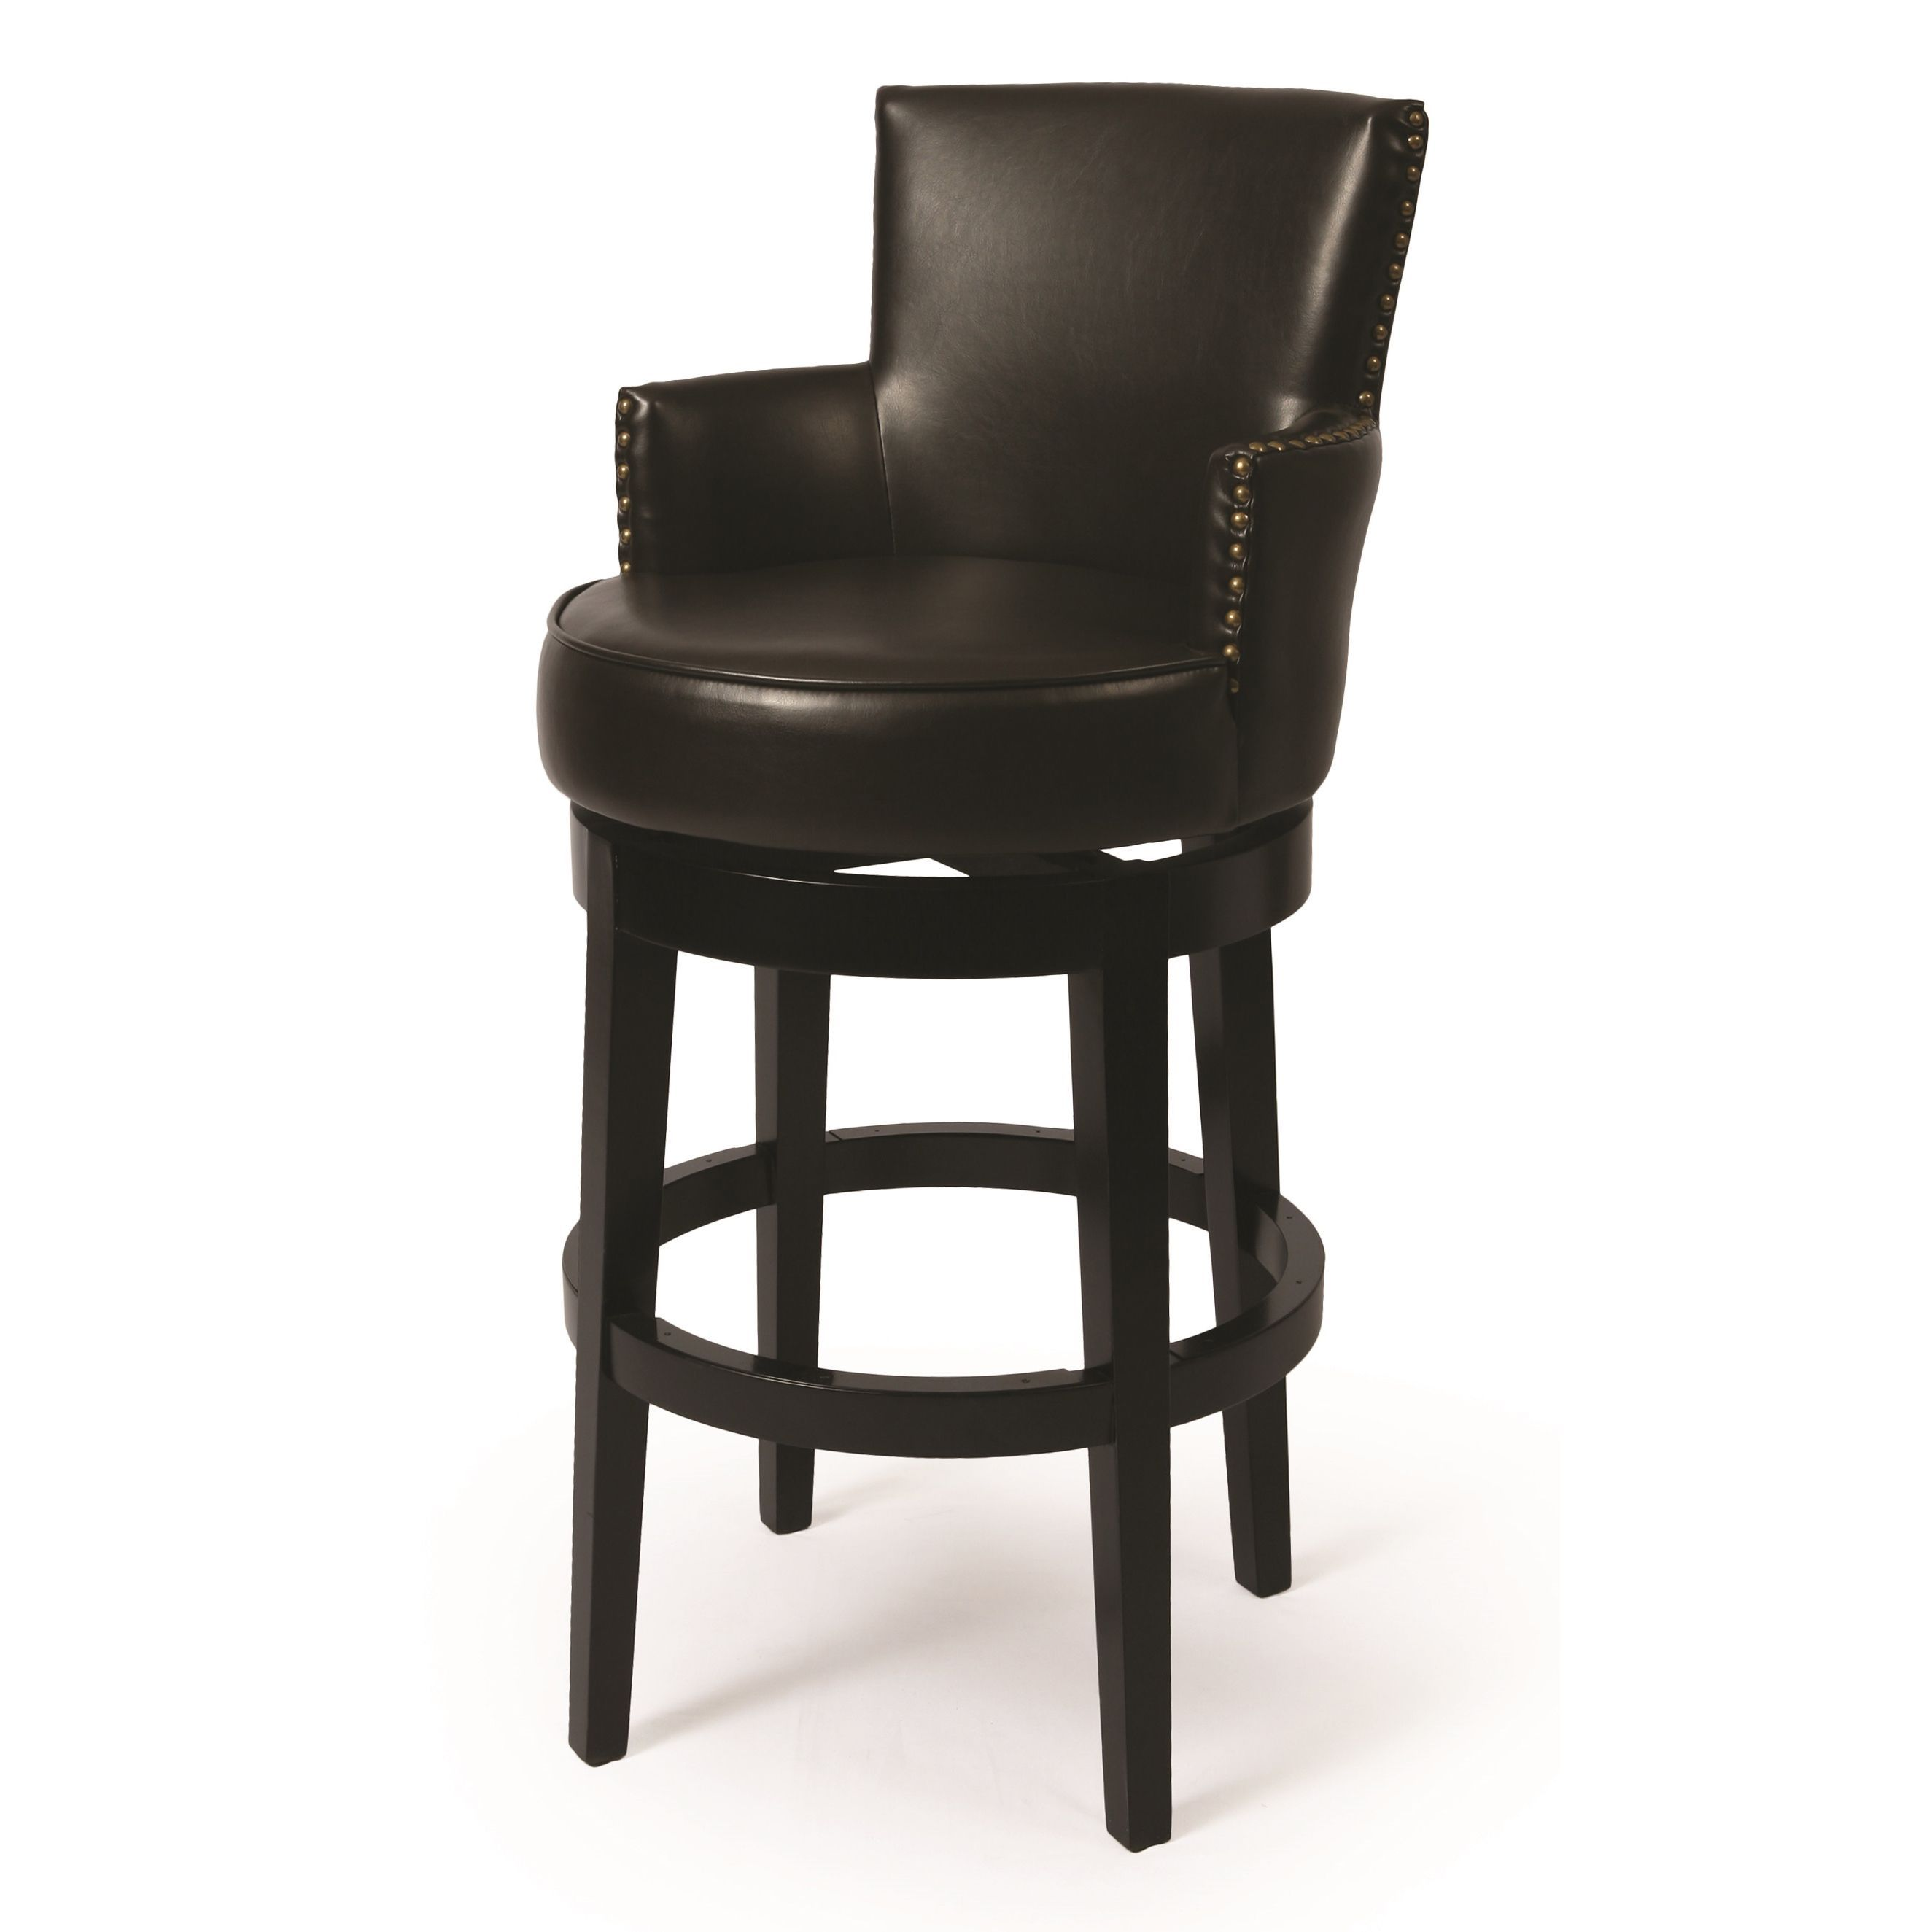 Zadar Brown Faux Leather And Black Wood Swivel Stool With Arms 30